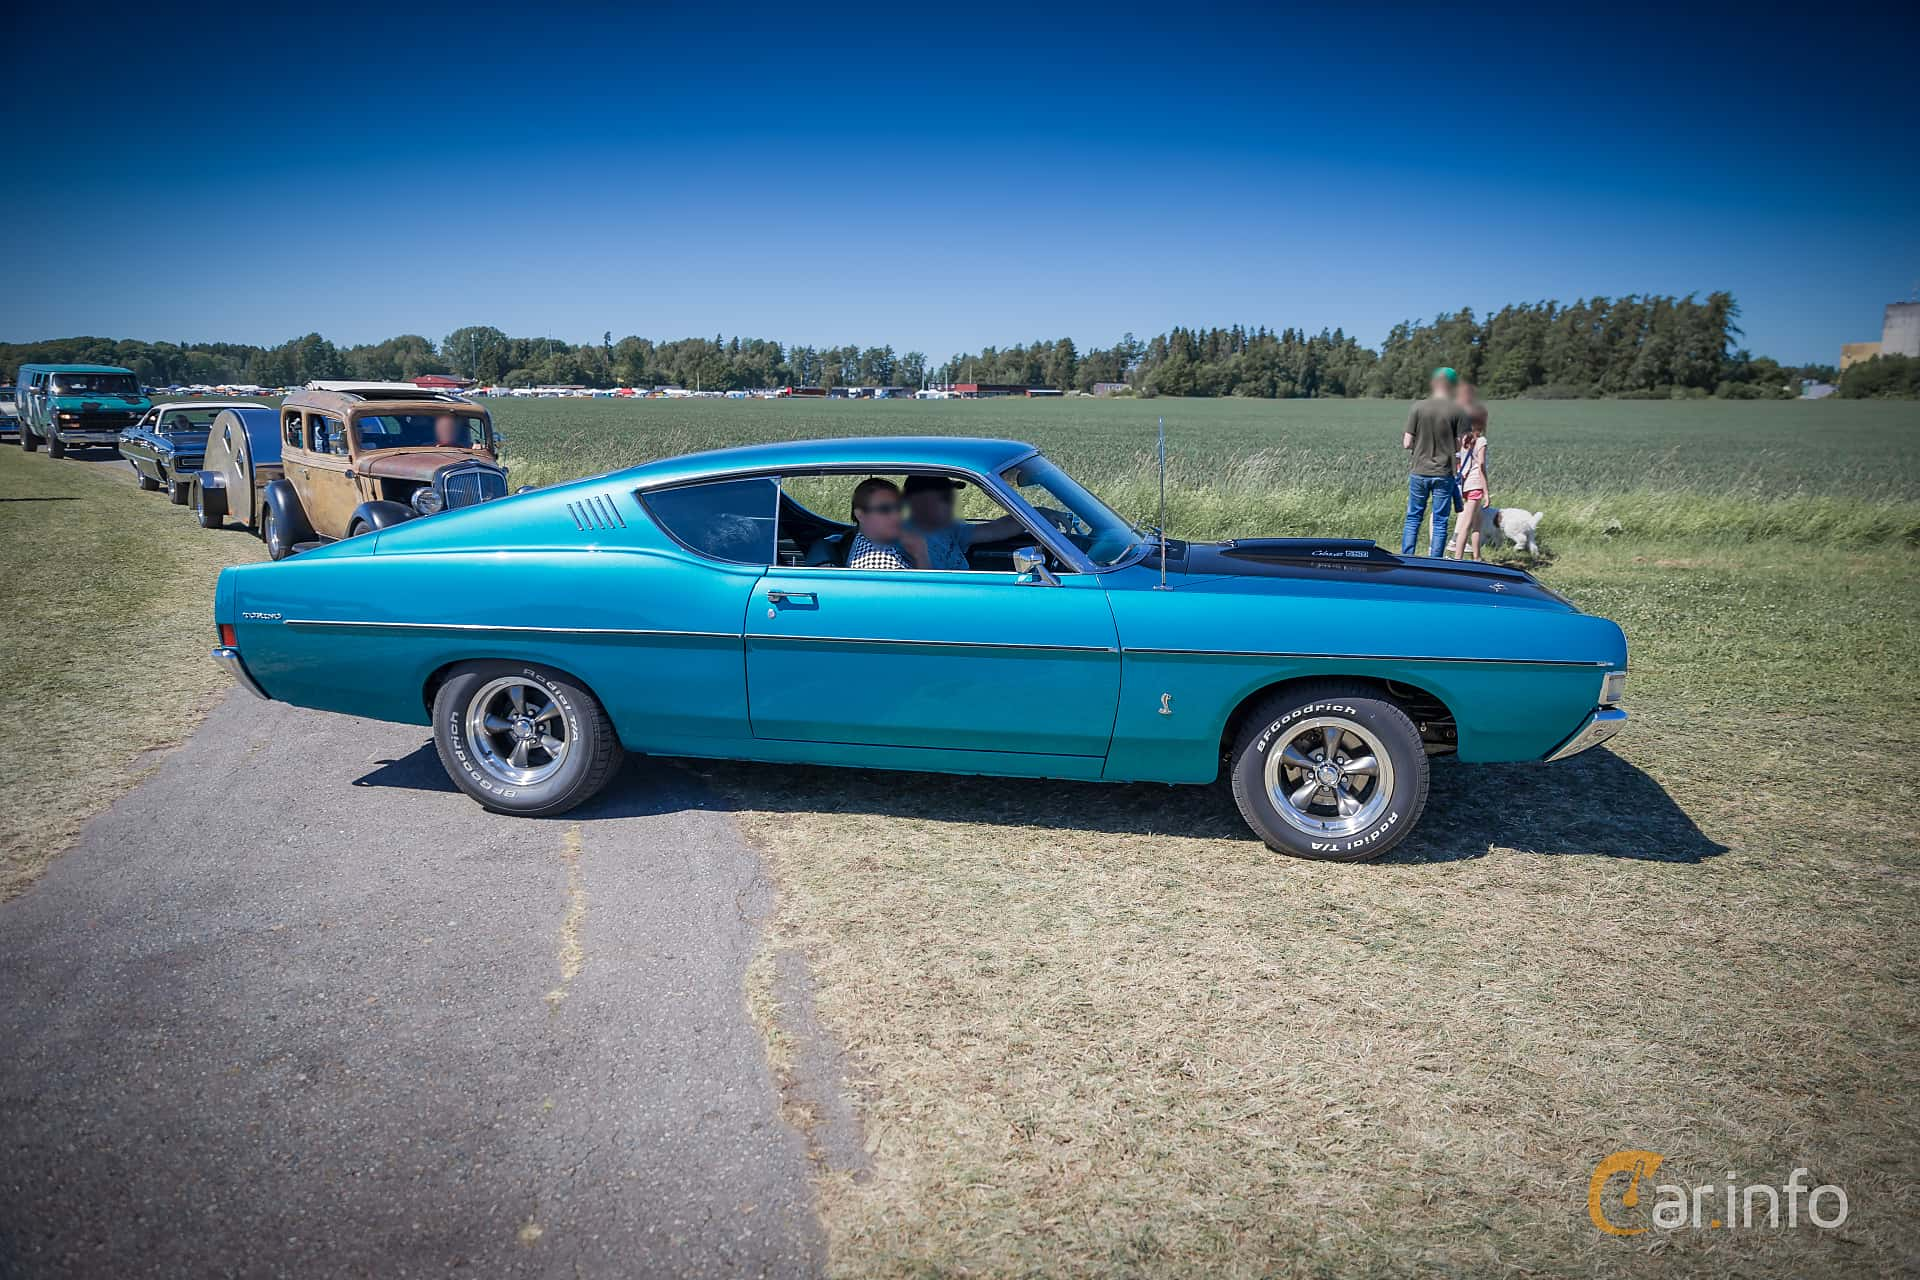 Ford Torino GT Fastback 6 4 V8 Automatic, 269hp, 1968